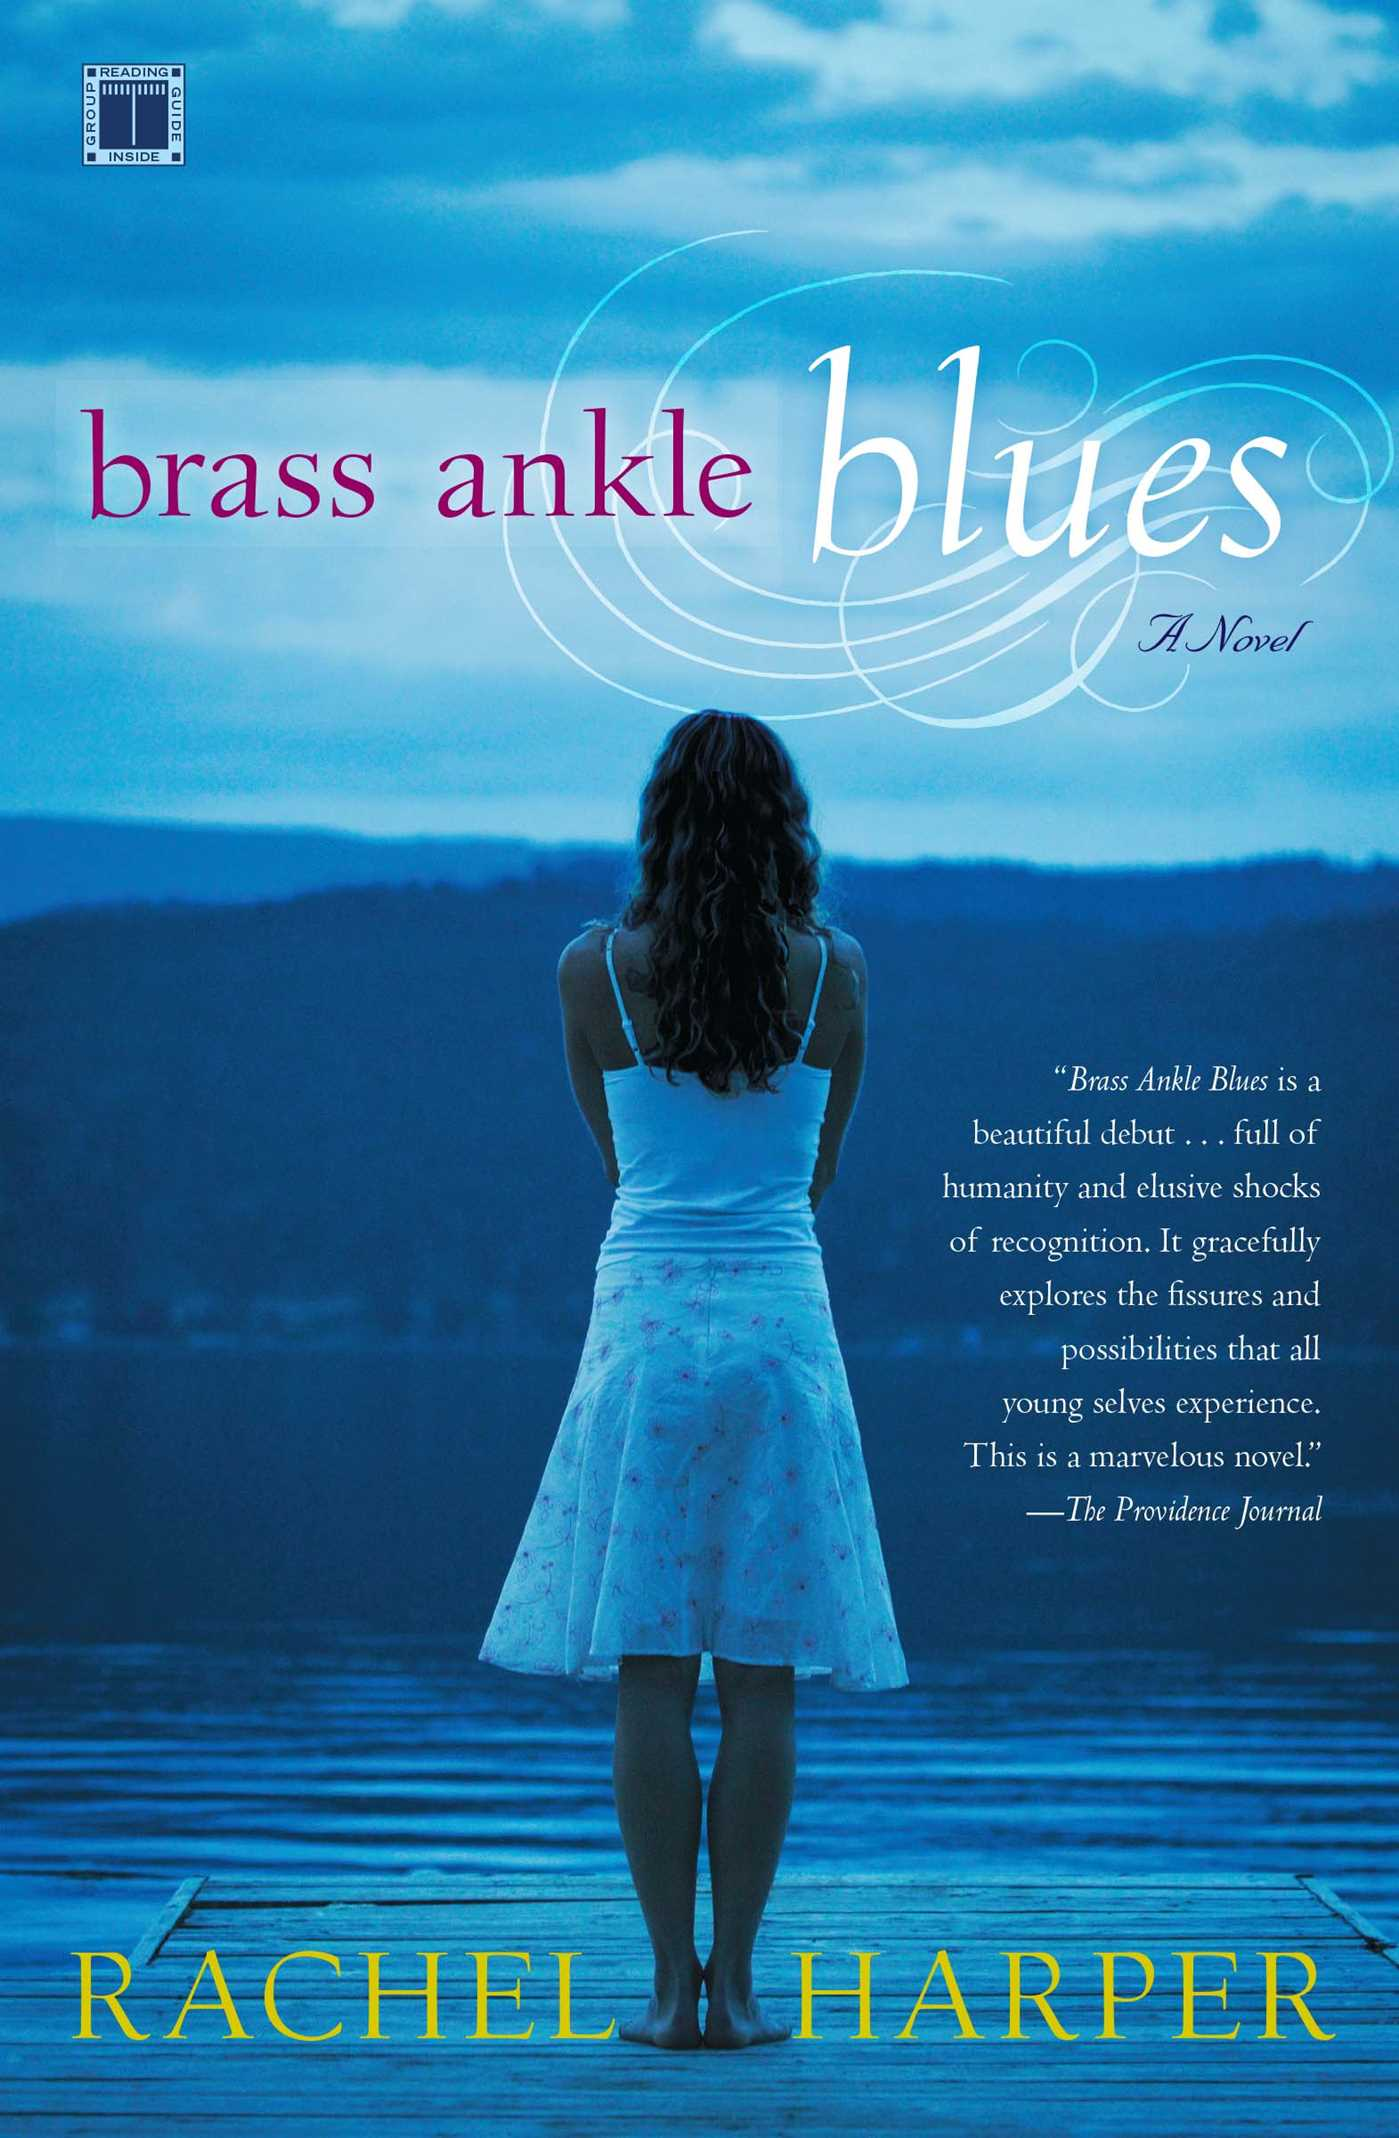 Brass ankle blues 9780743296588 hr